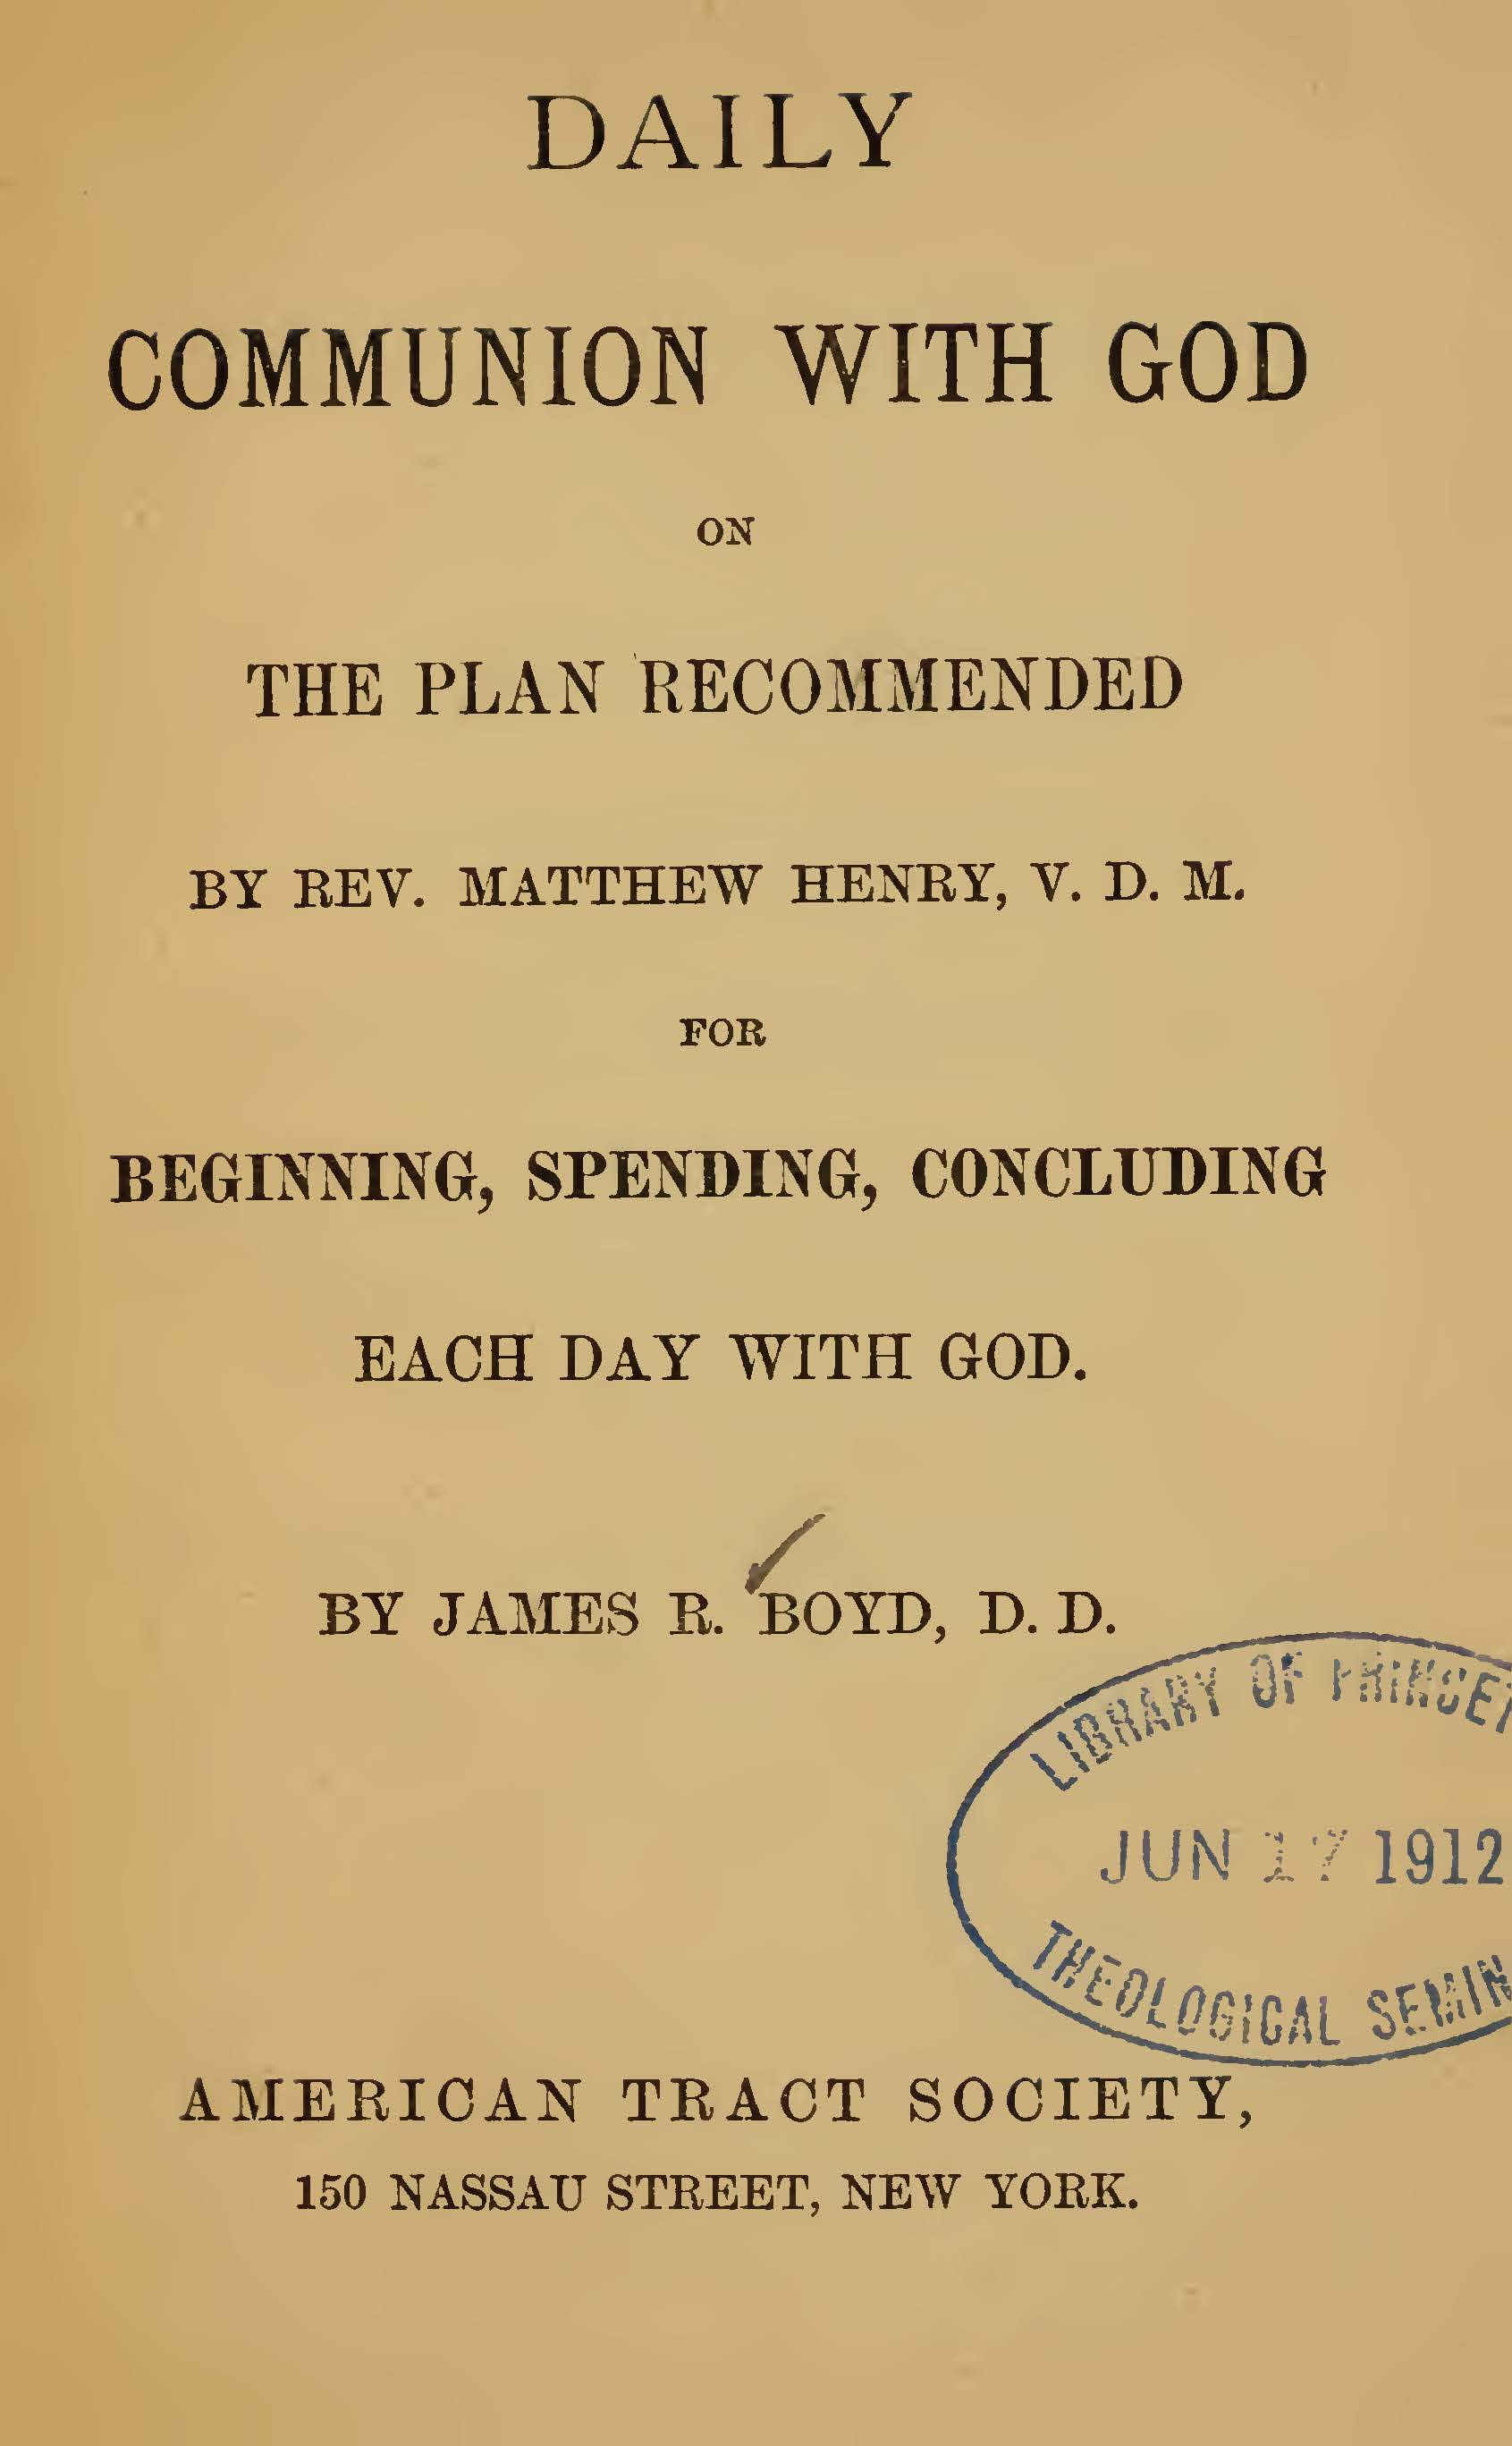 Boyd, James Robert, Daily Communion with God Title Page.jpg